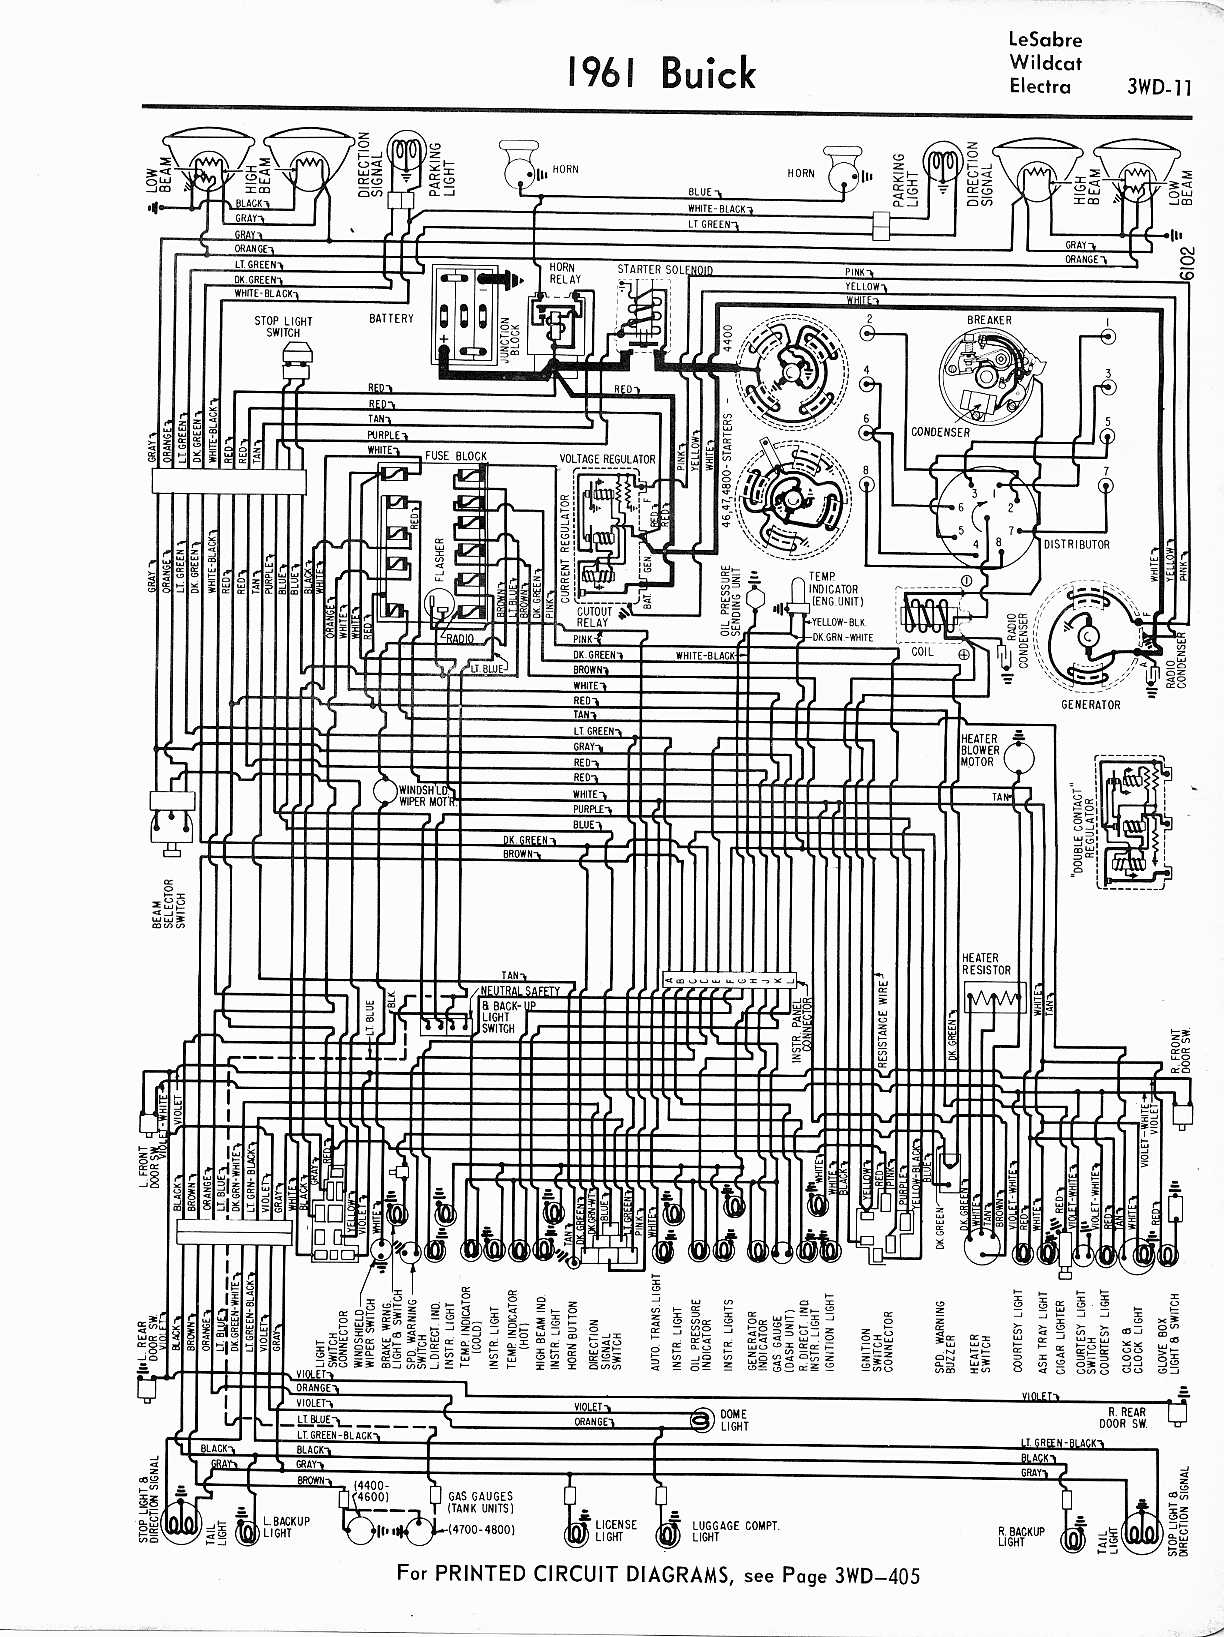 94 Lesabre Wiring Diagrams Diagram Libraries Simple Car Dashboard For Buick Diagramsbuick 1957 1965 Saturn L100